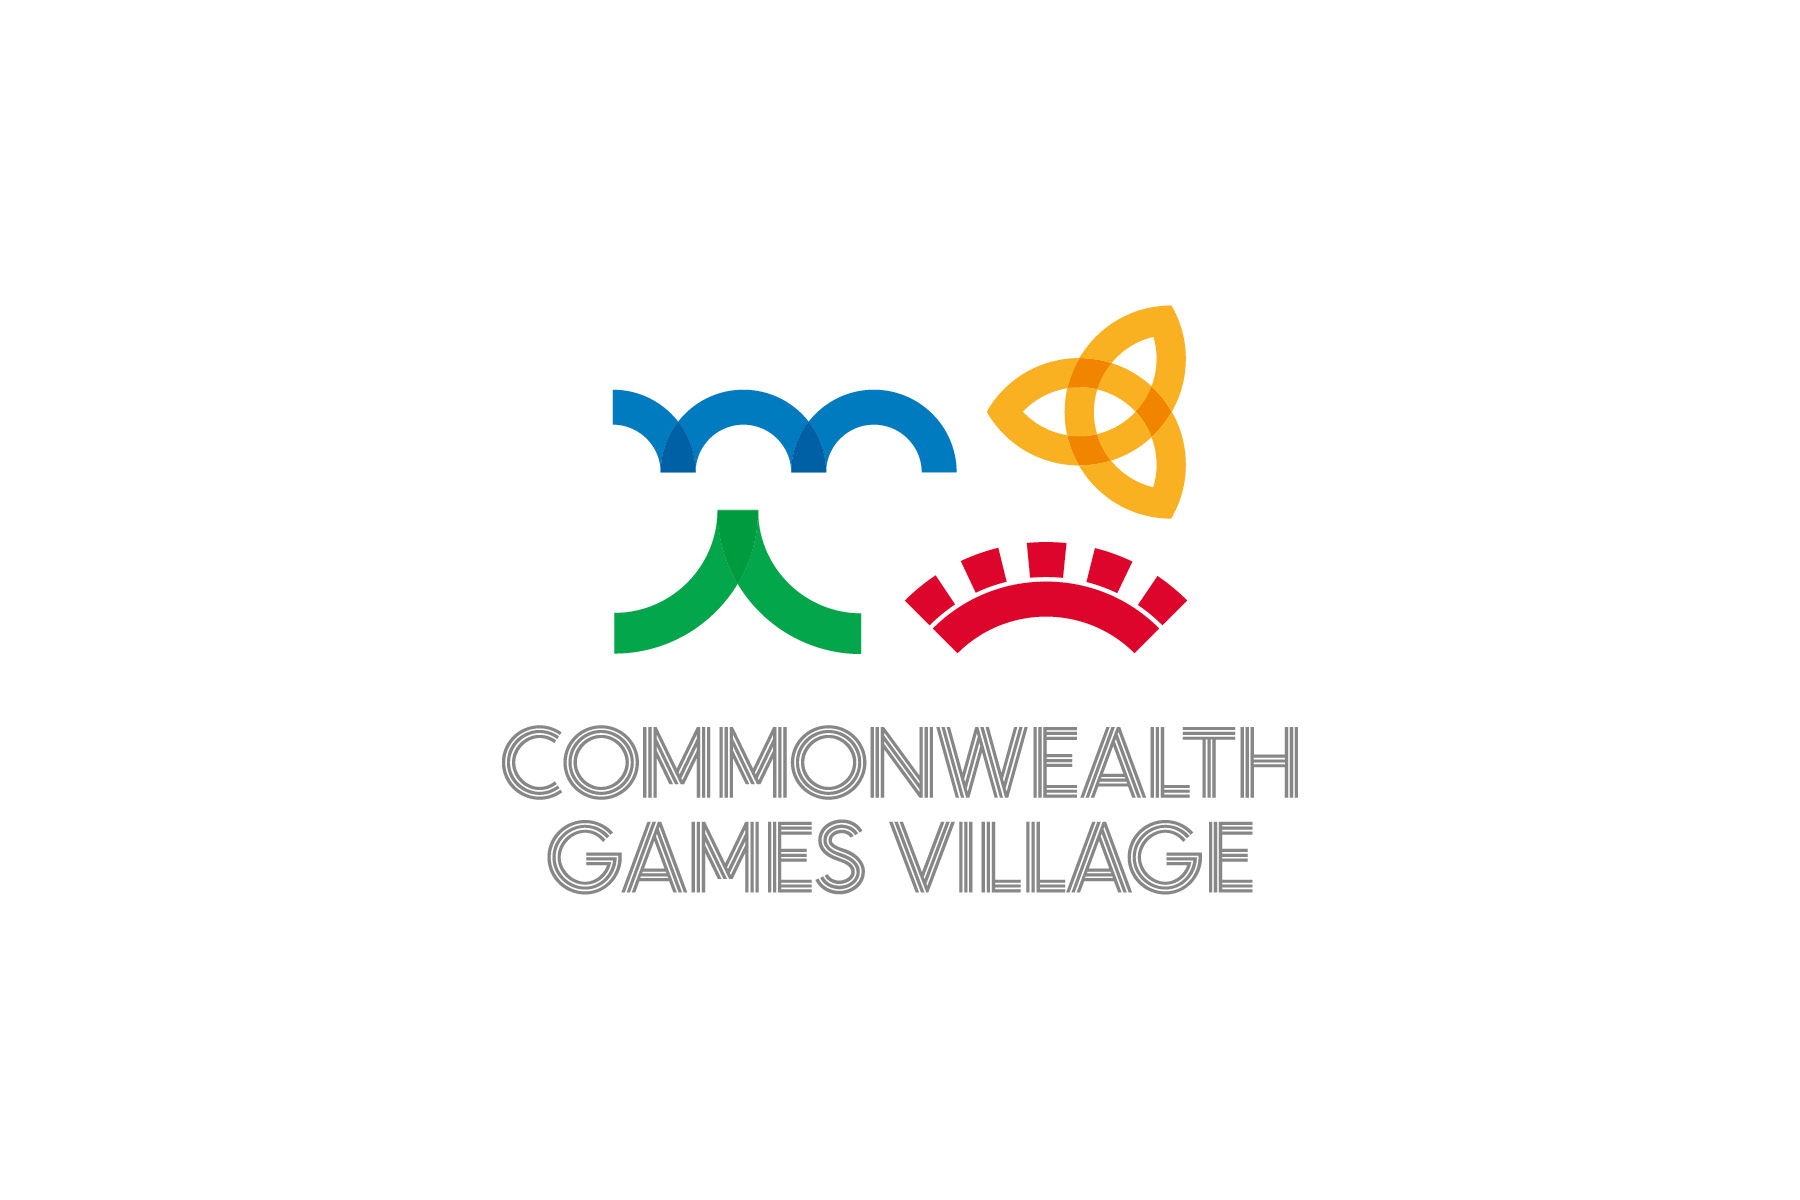 Athletes Village